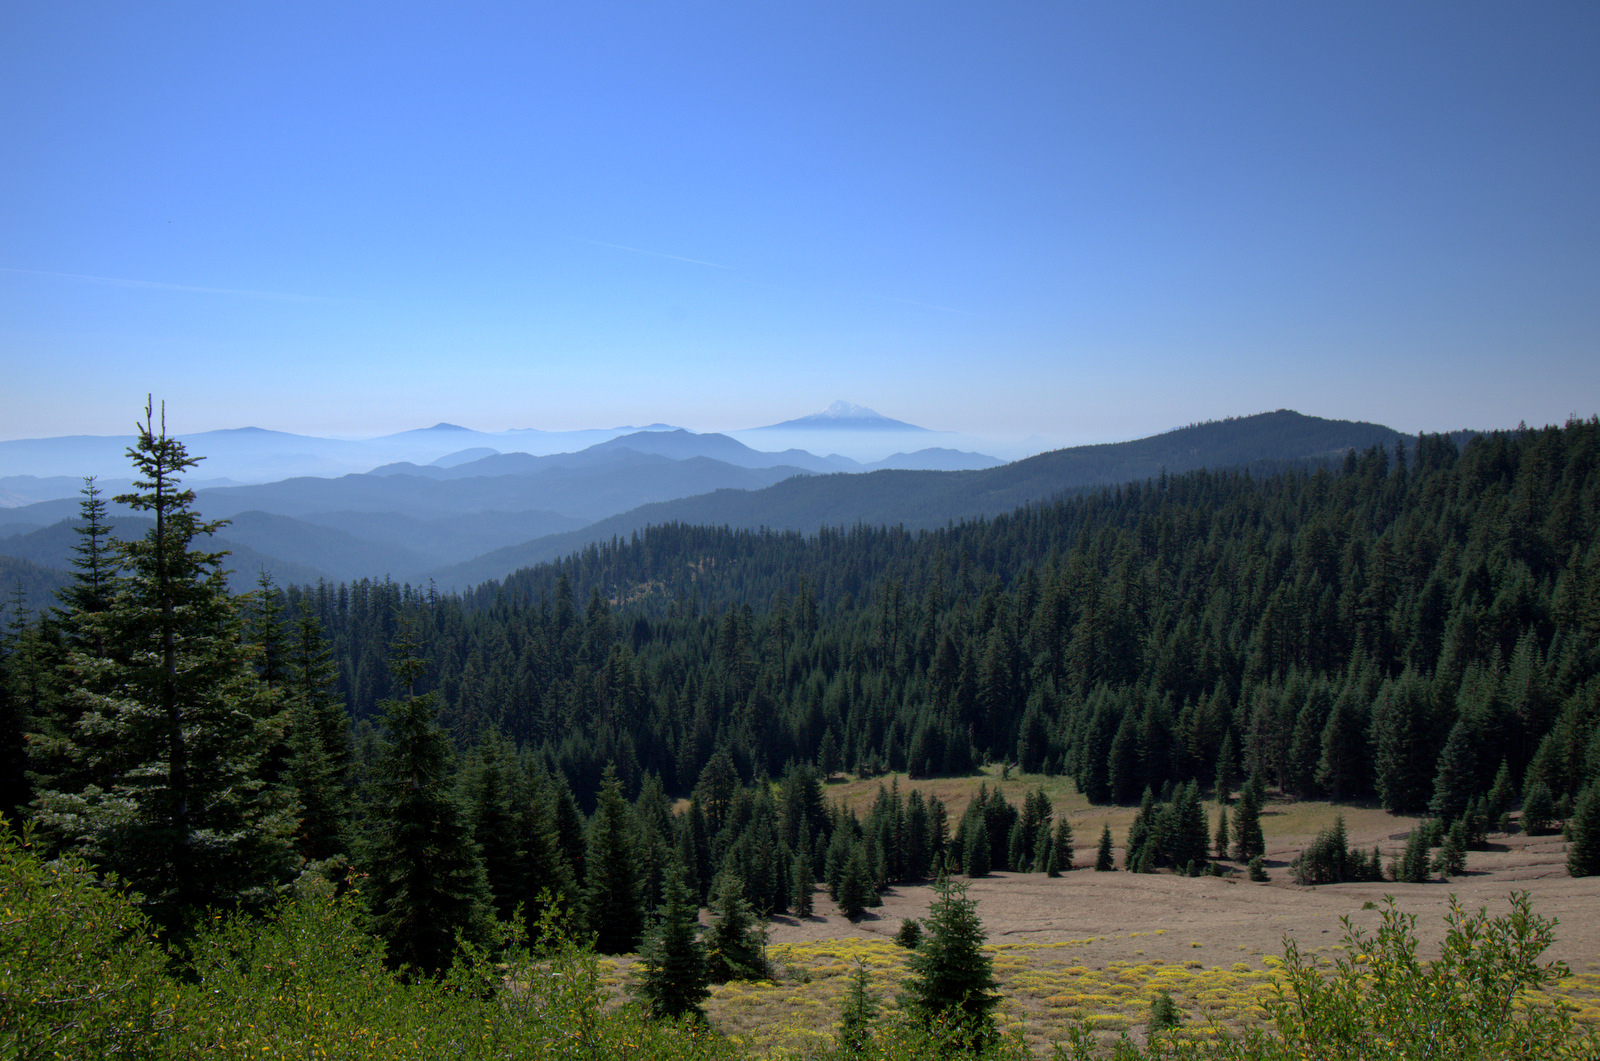 Siskiyou Crest Drive Forest Road 20 Oregon